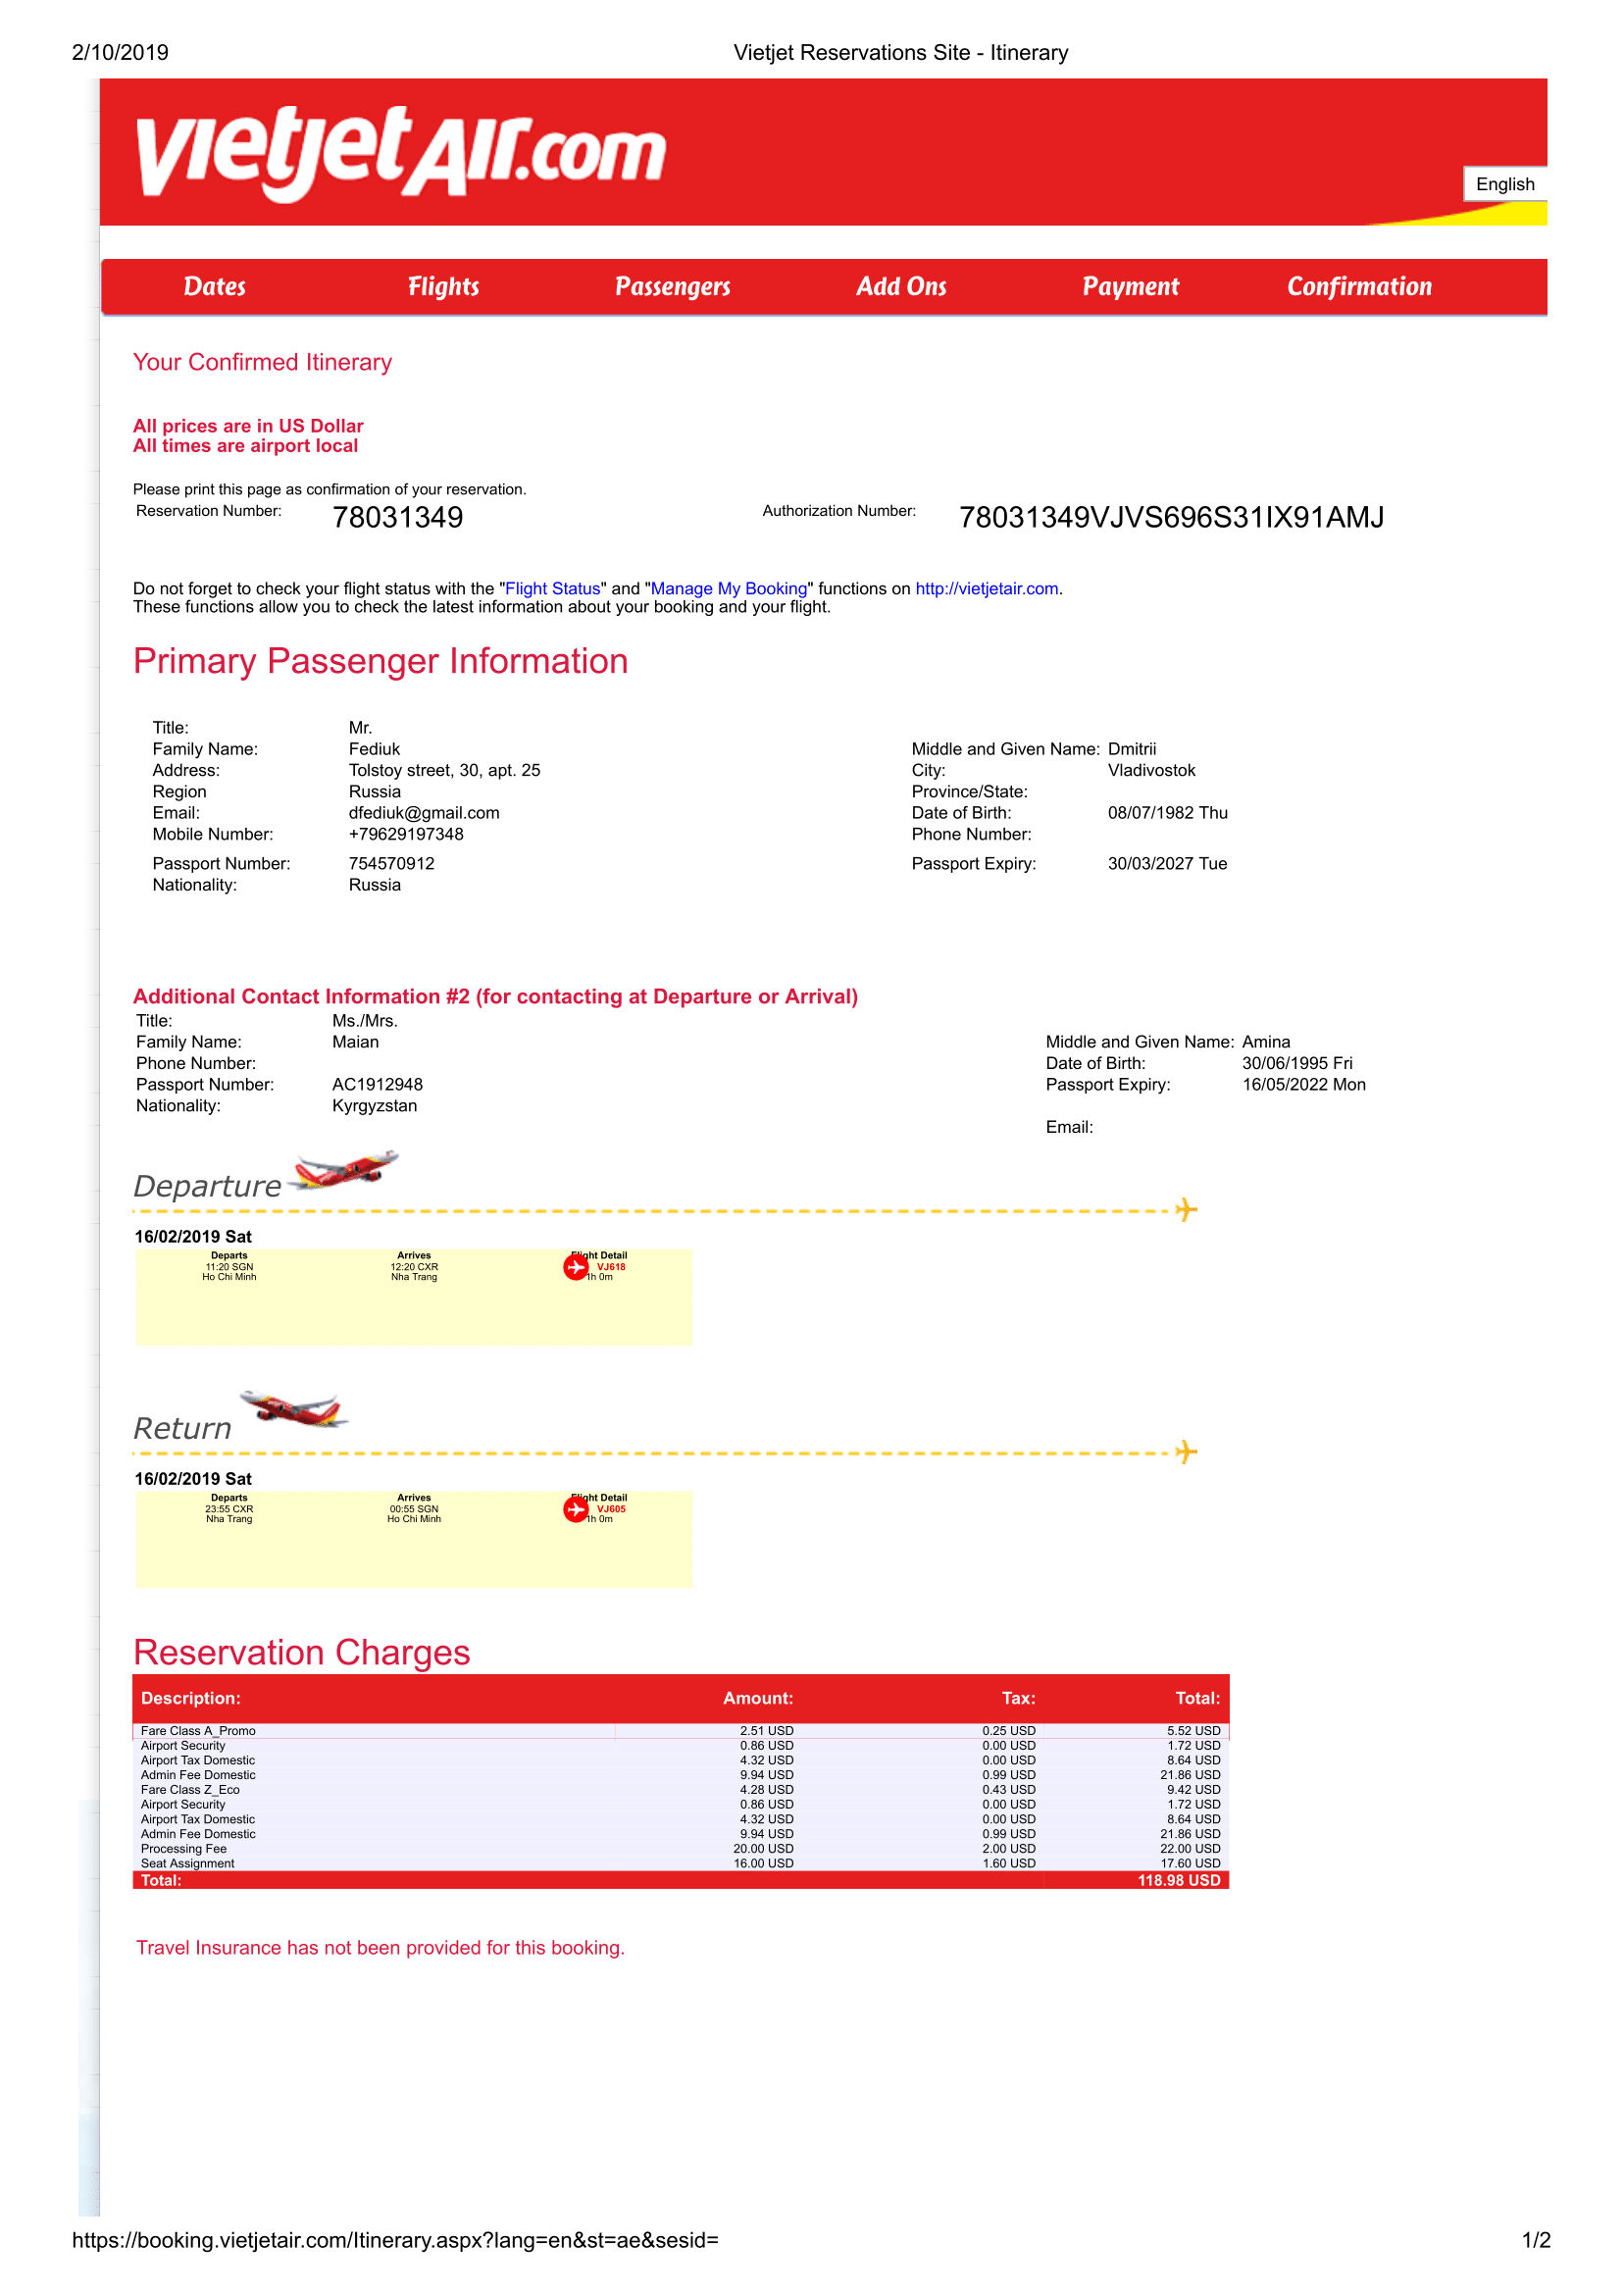 Vietjet%20Reservations%20Site%20-%20Itinerary-1